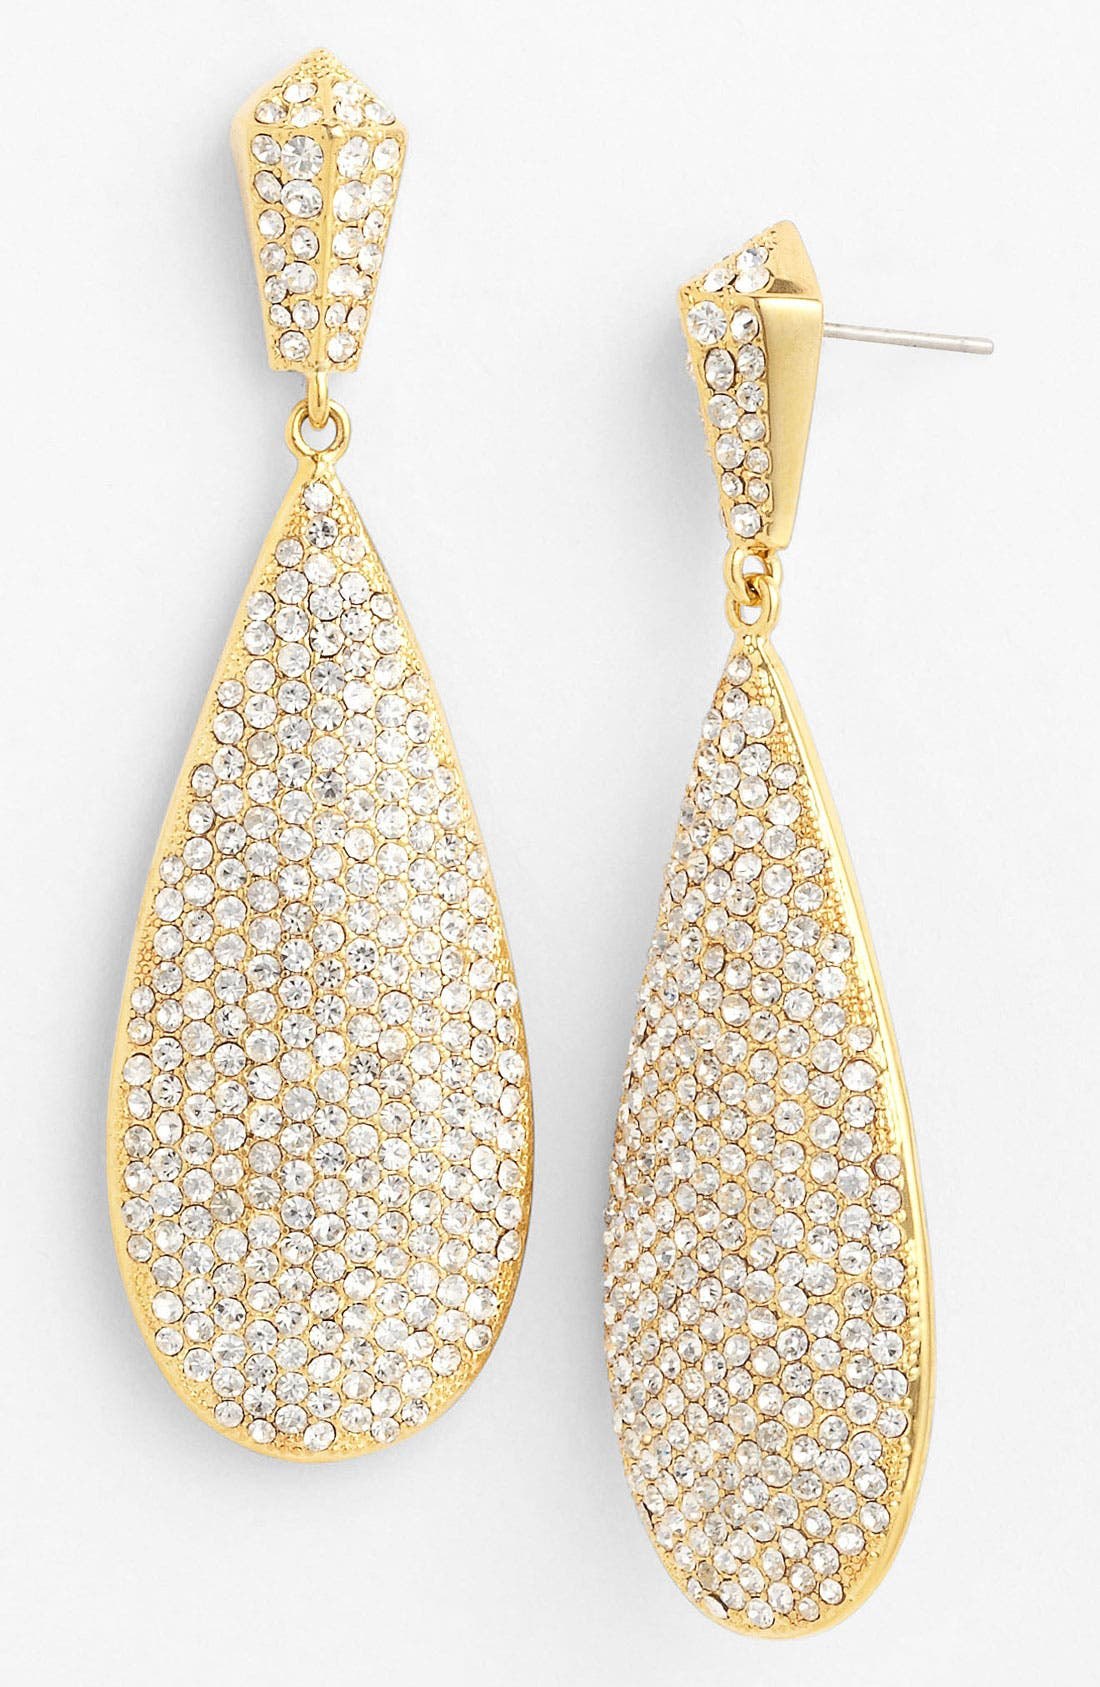 Main Image - Vince Camuto Teardrop Earrings